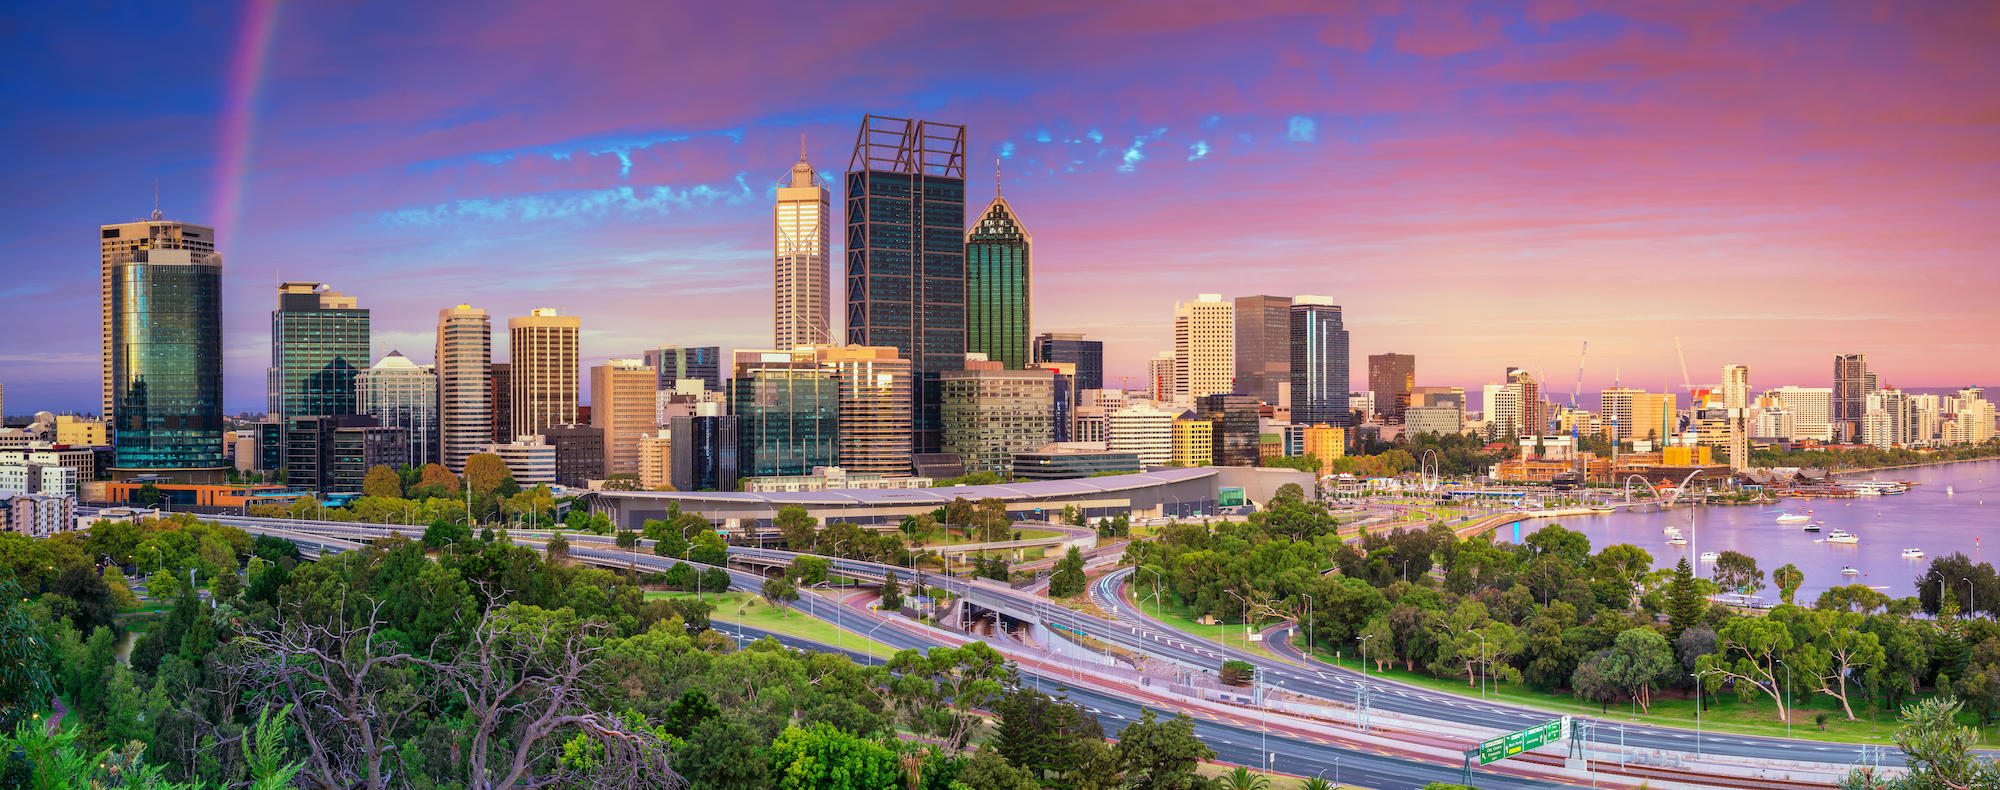 Perth Australia. The site of the OXMT office where IronMan was conceived.